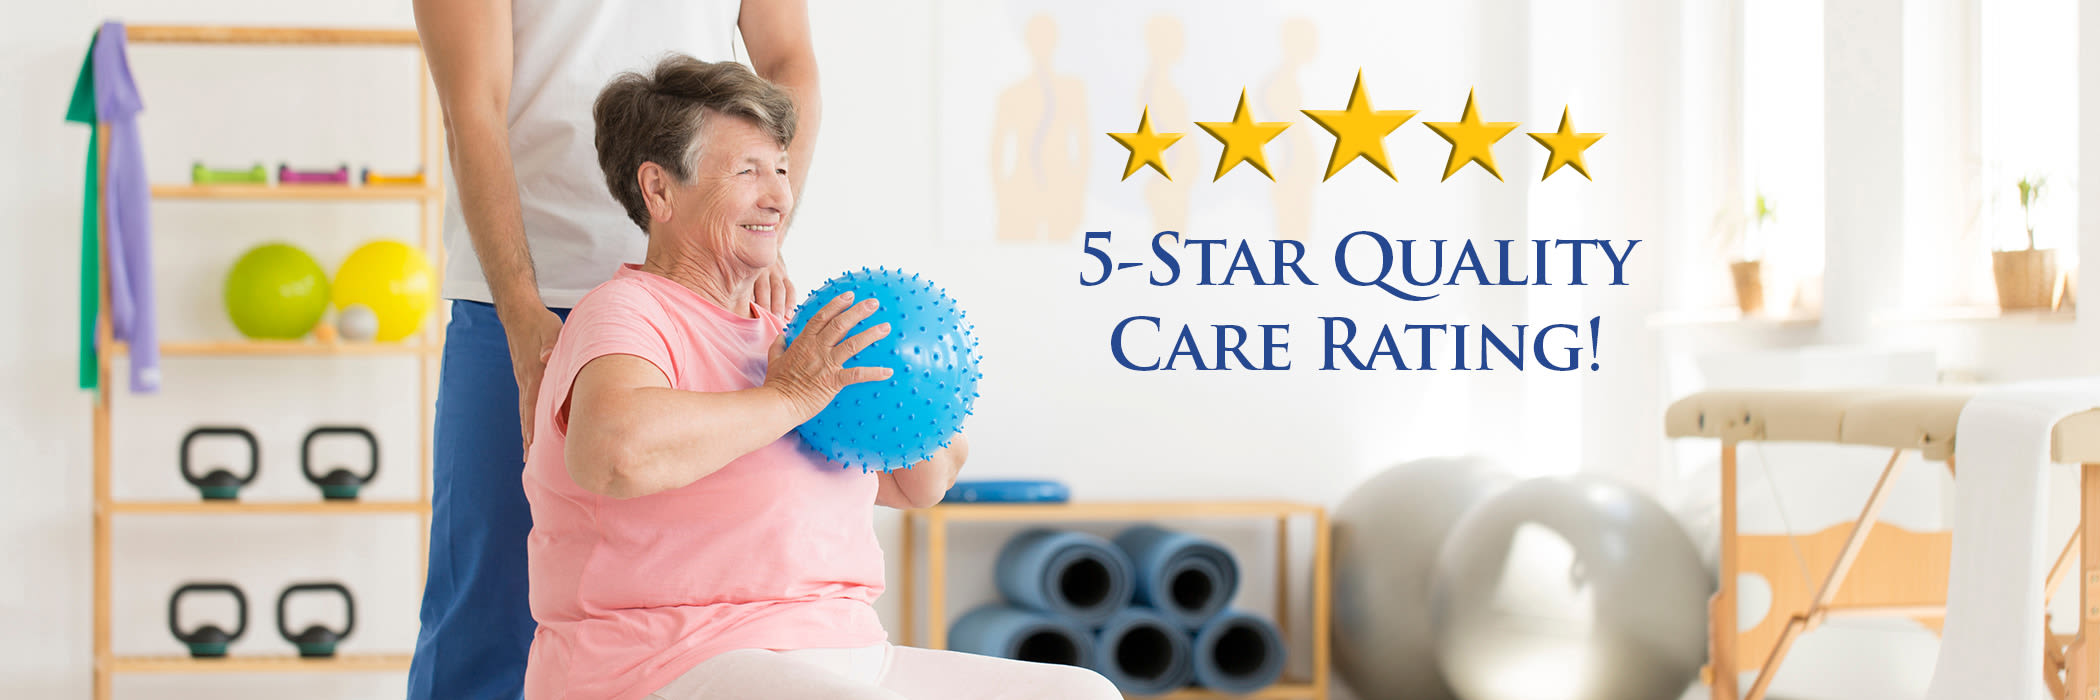 Five Star Quality Care Rating